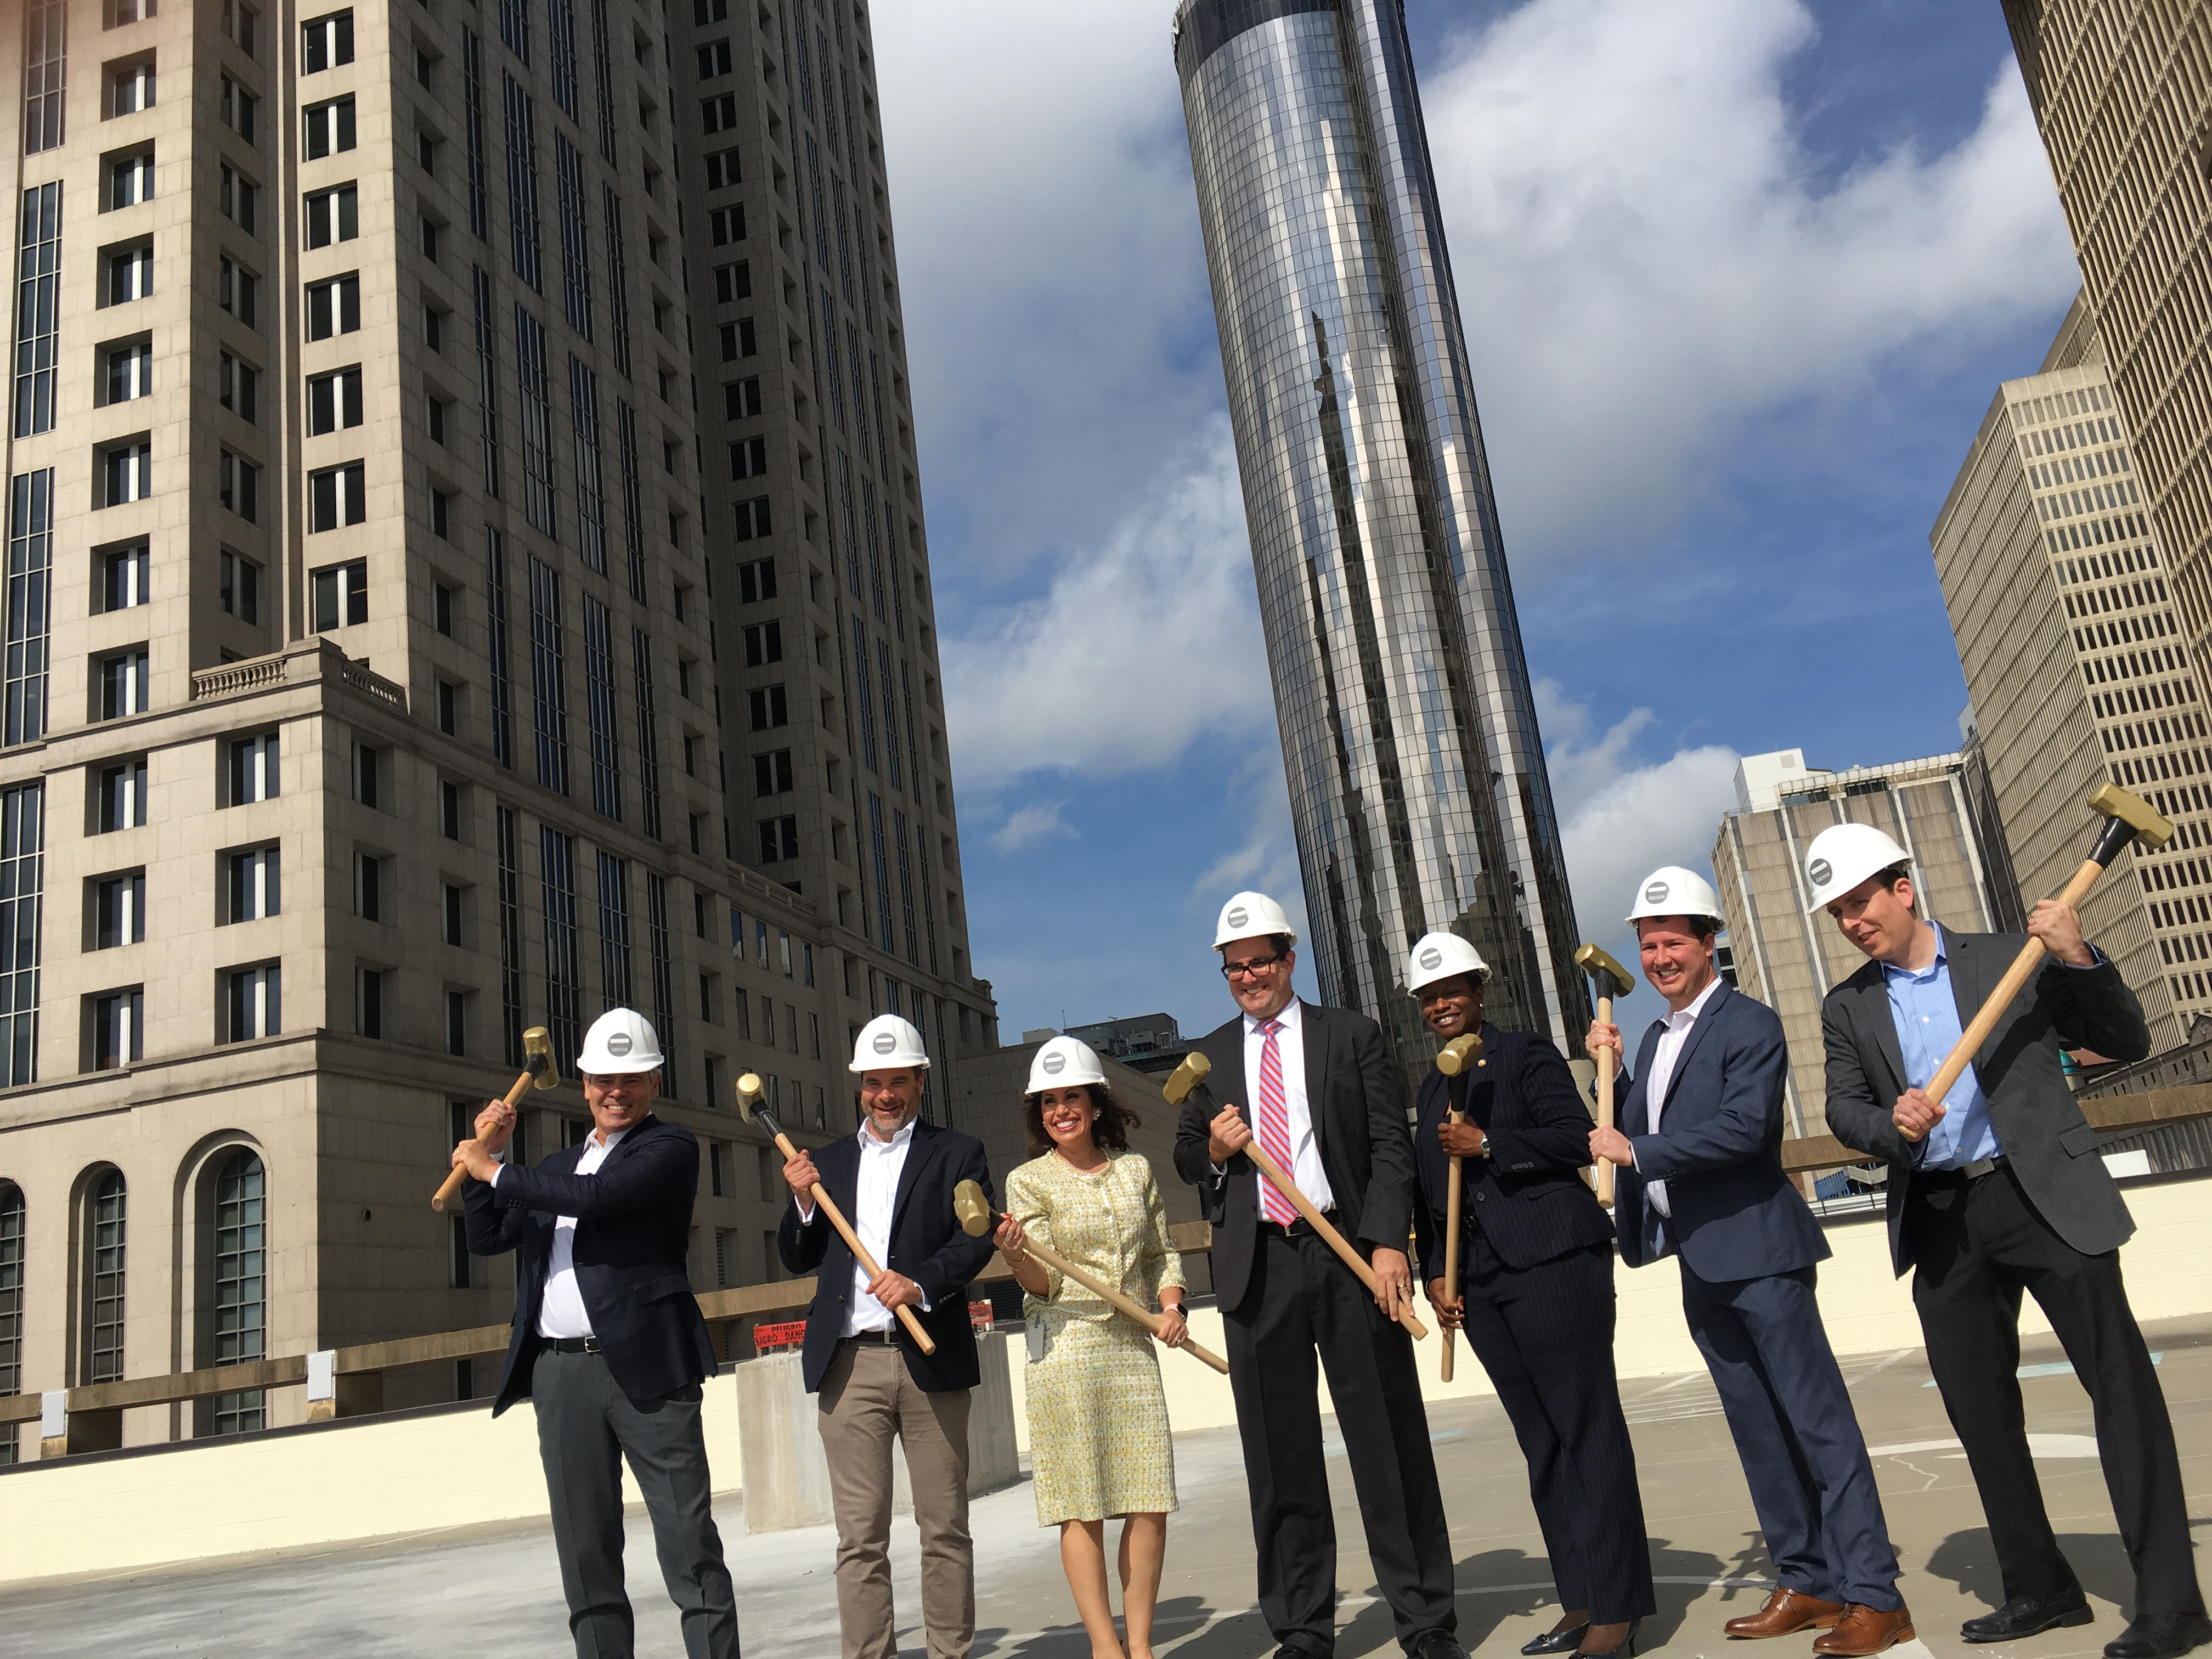 Leaders from the 161 Peachtree Center development team plus the city of Atlanta at the Thursday groundbreaking. Credit: Maggie Lee